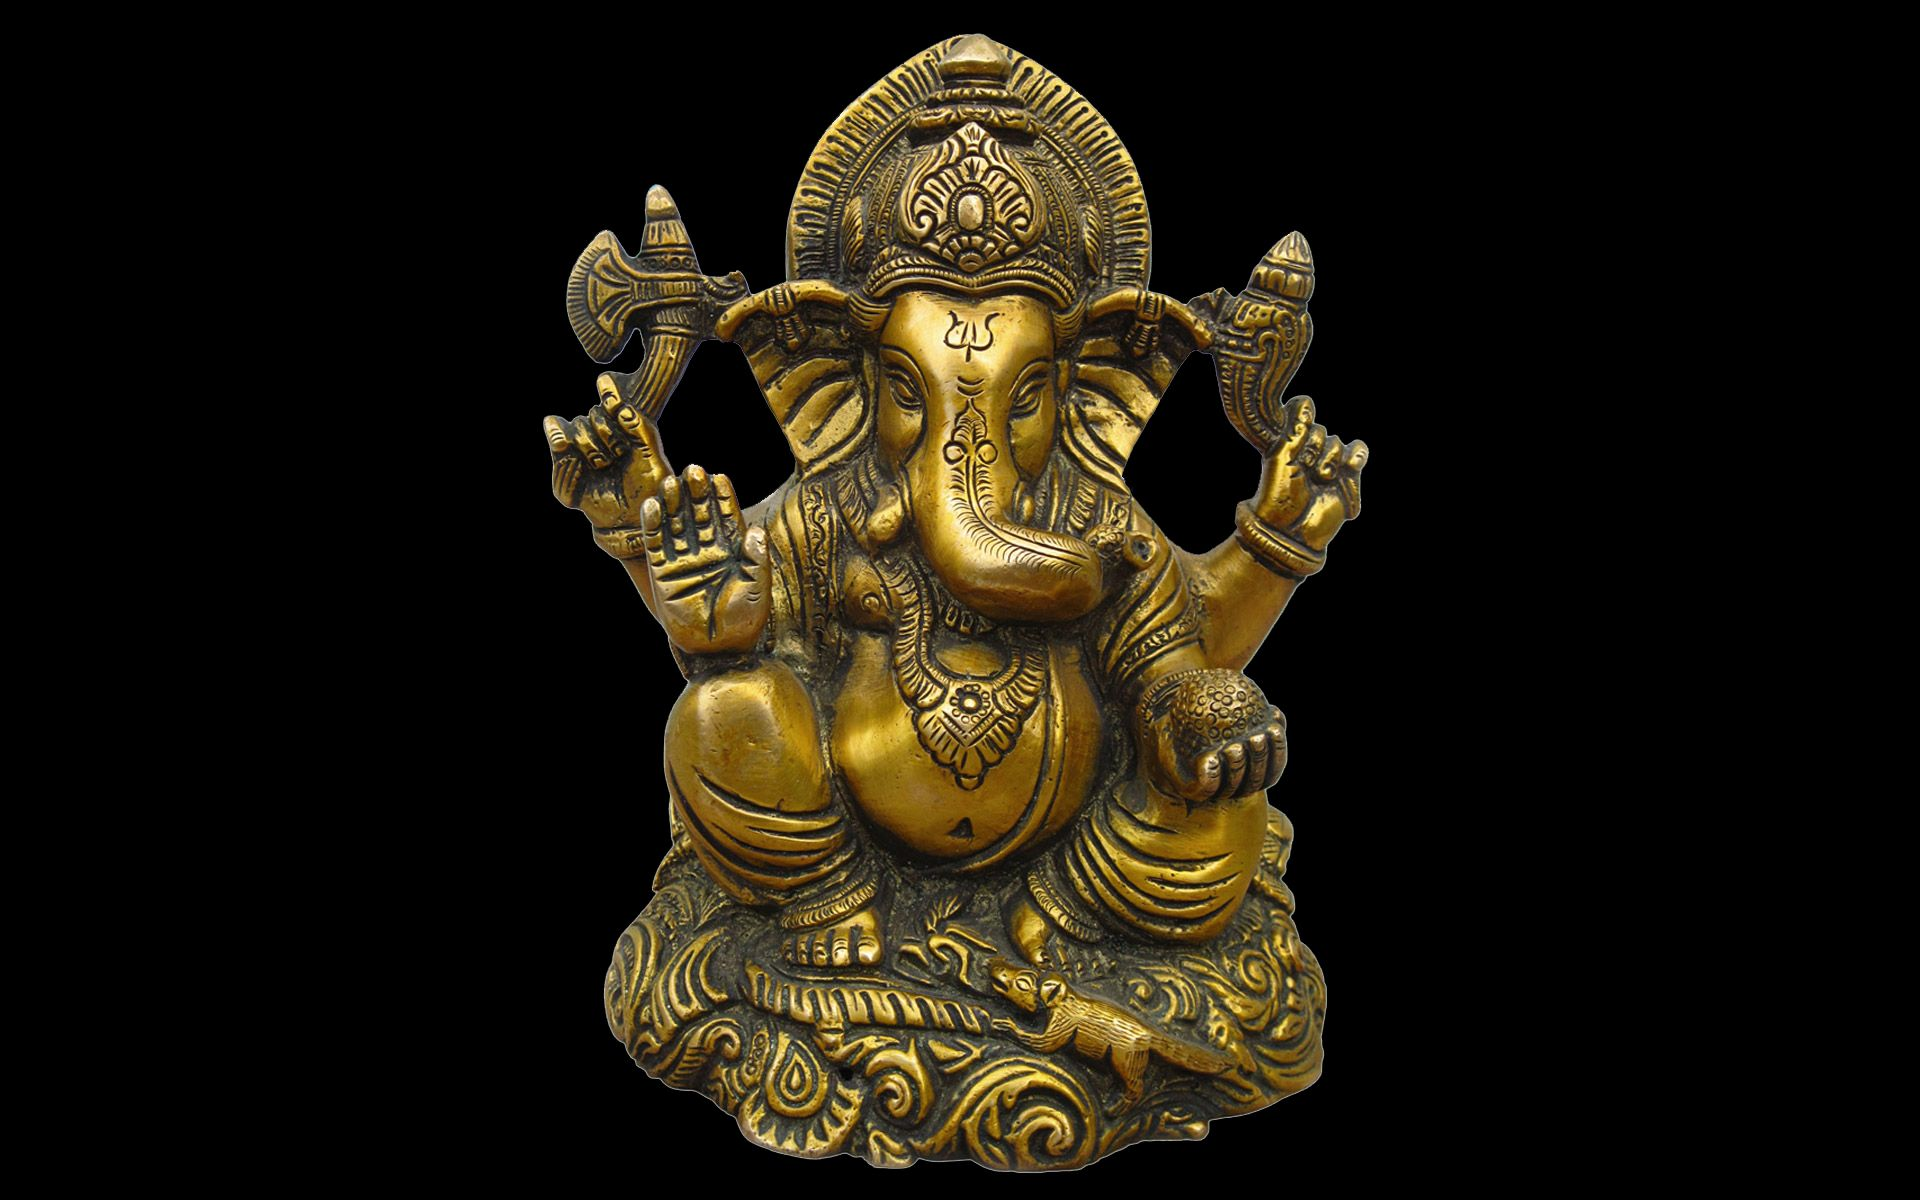 lord ganesha hd new desktop god ganesh lord ganesha hd new desktop